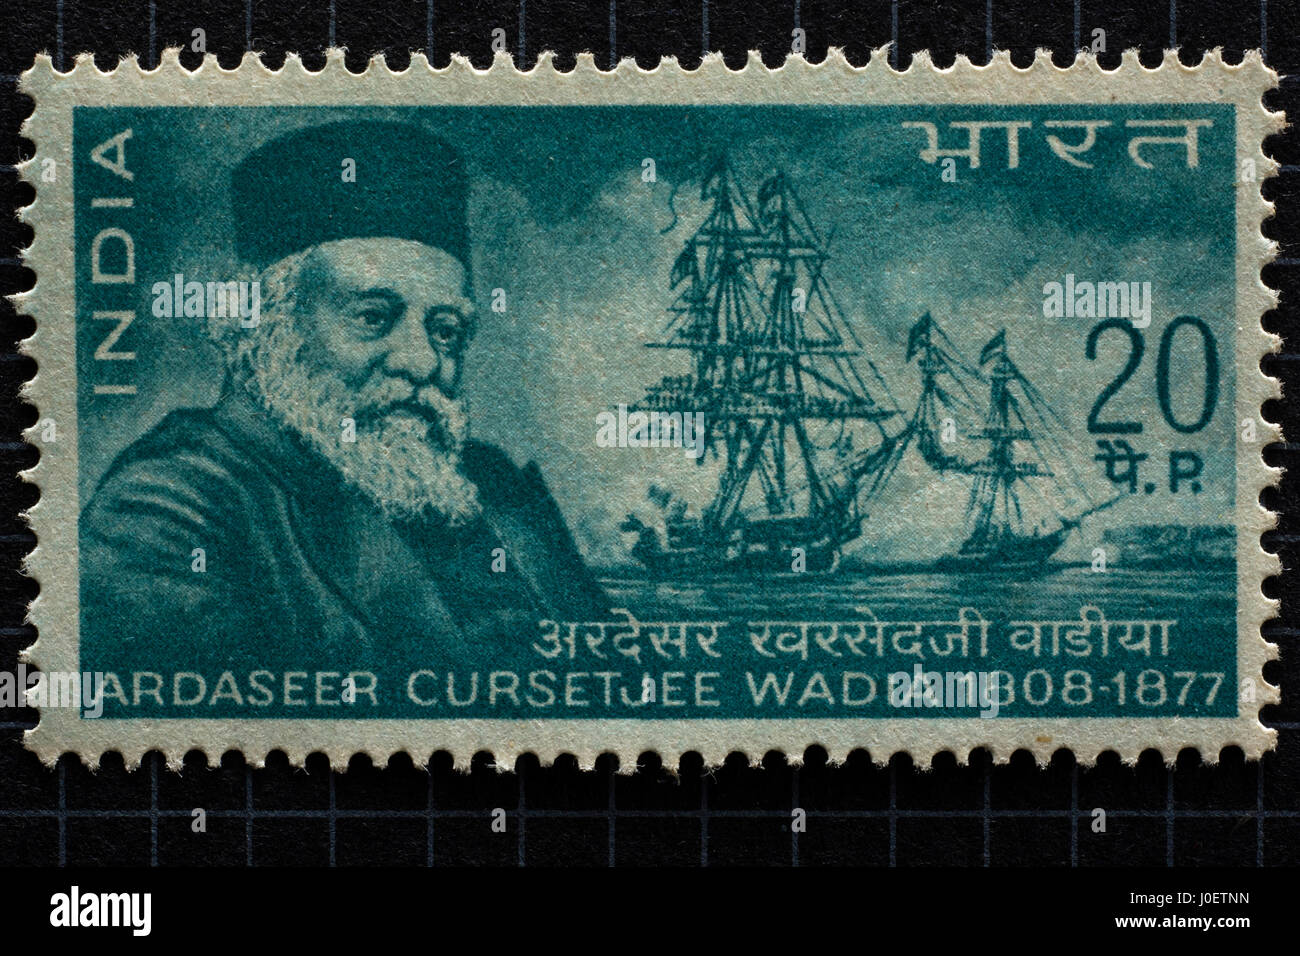 Parsi ardaseer cursetjee wadia, postage stamps, india, asia - Stock Image